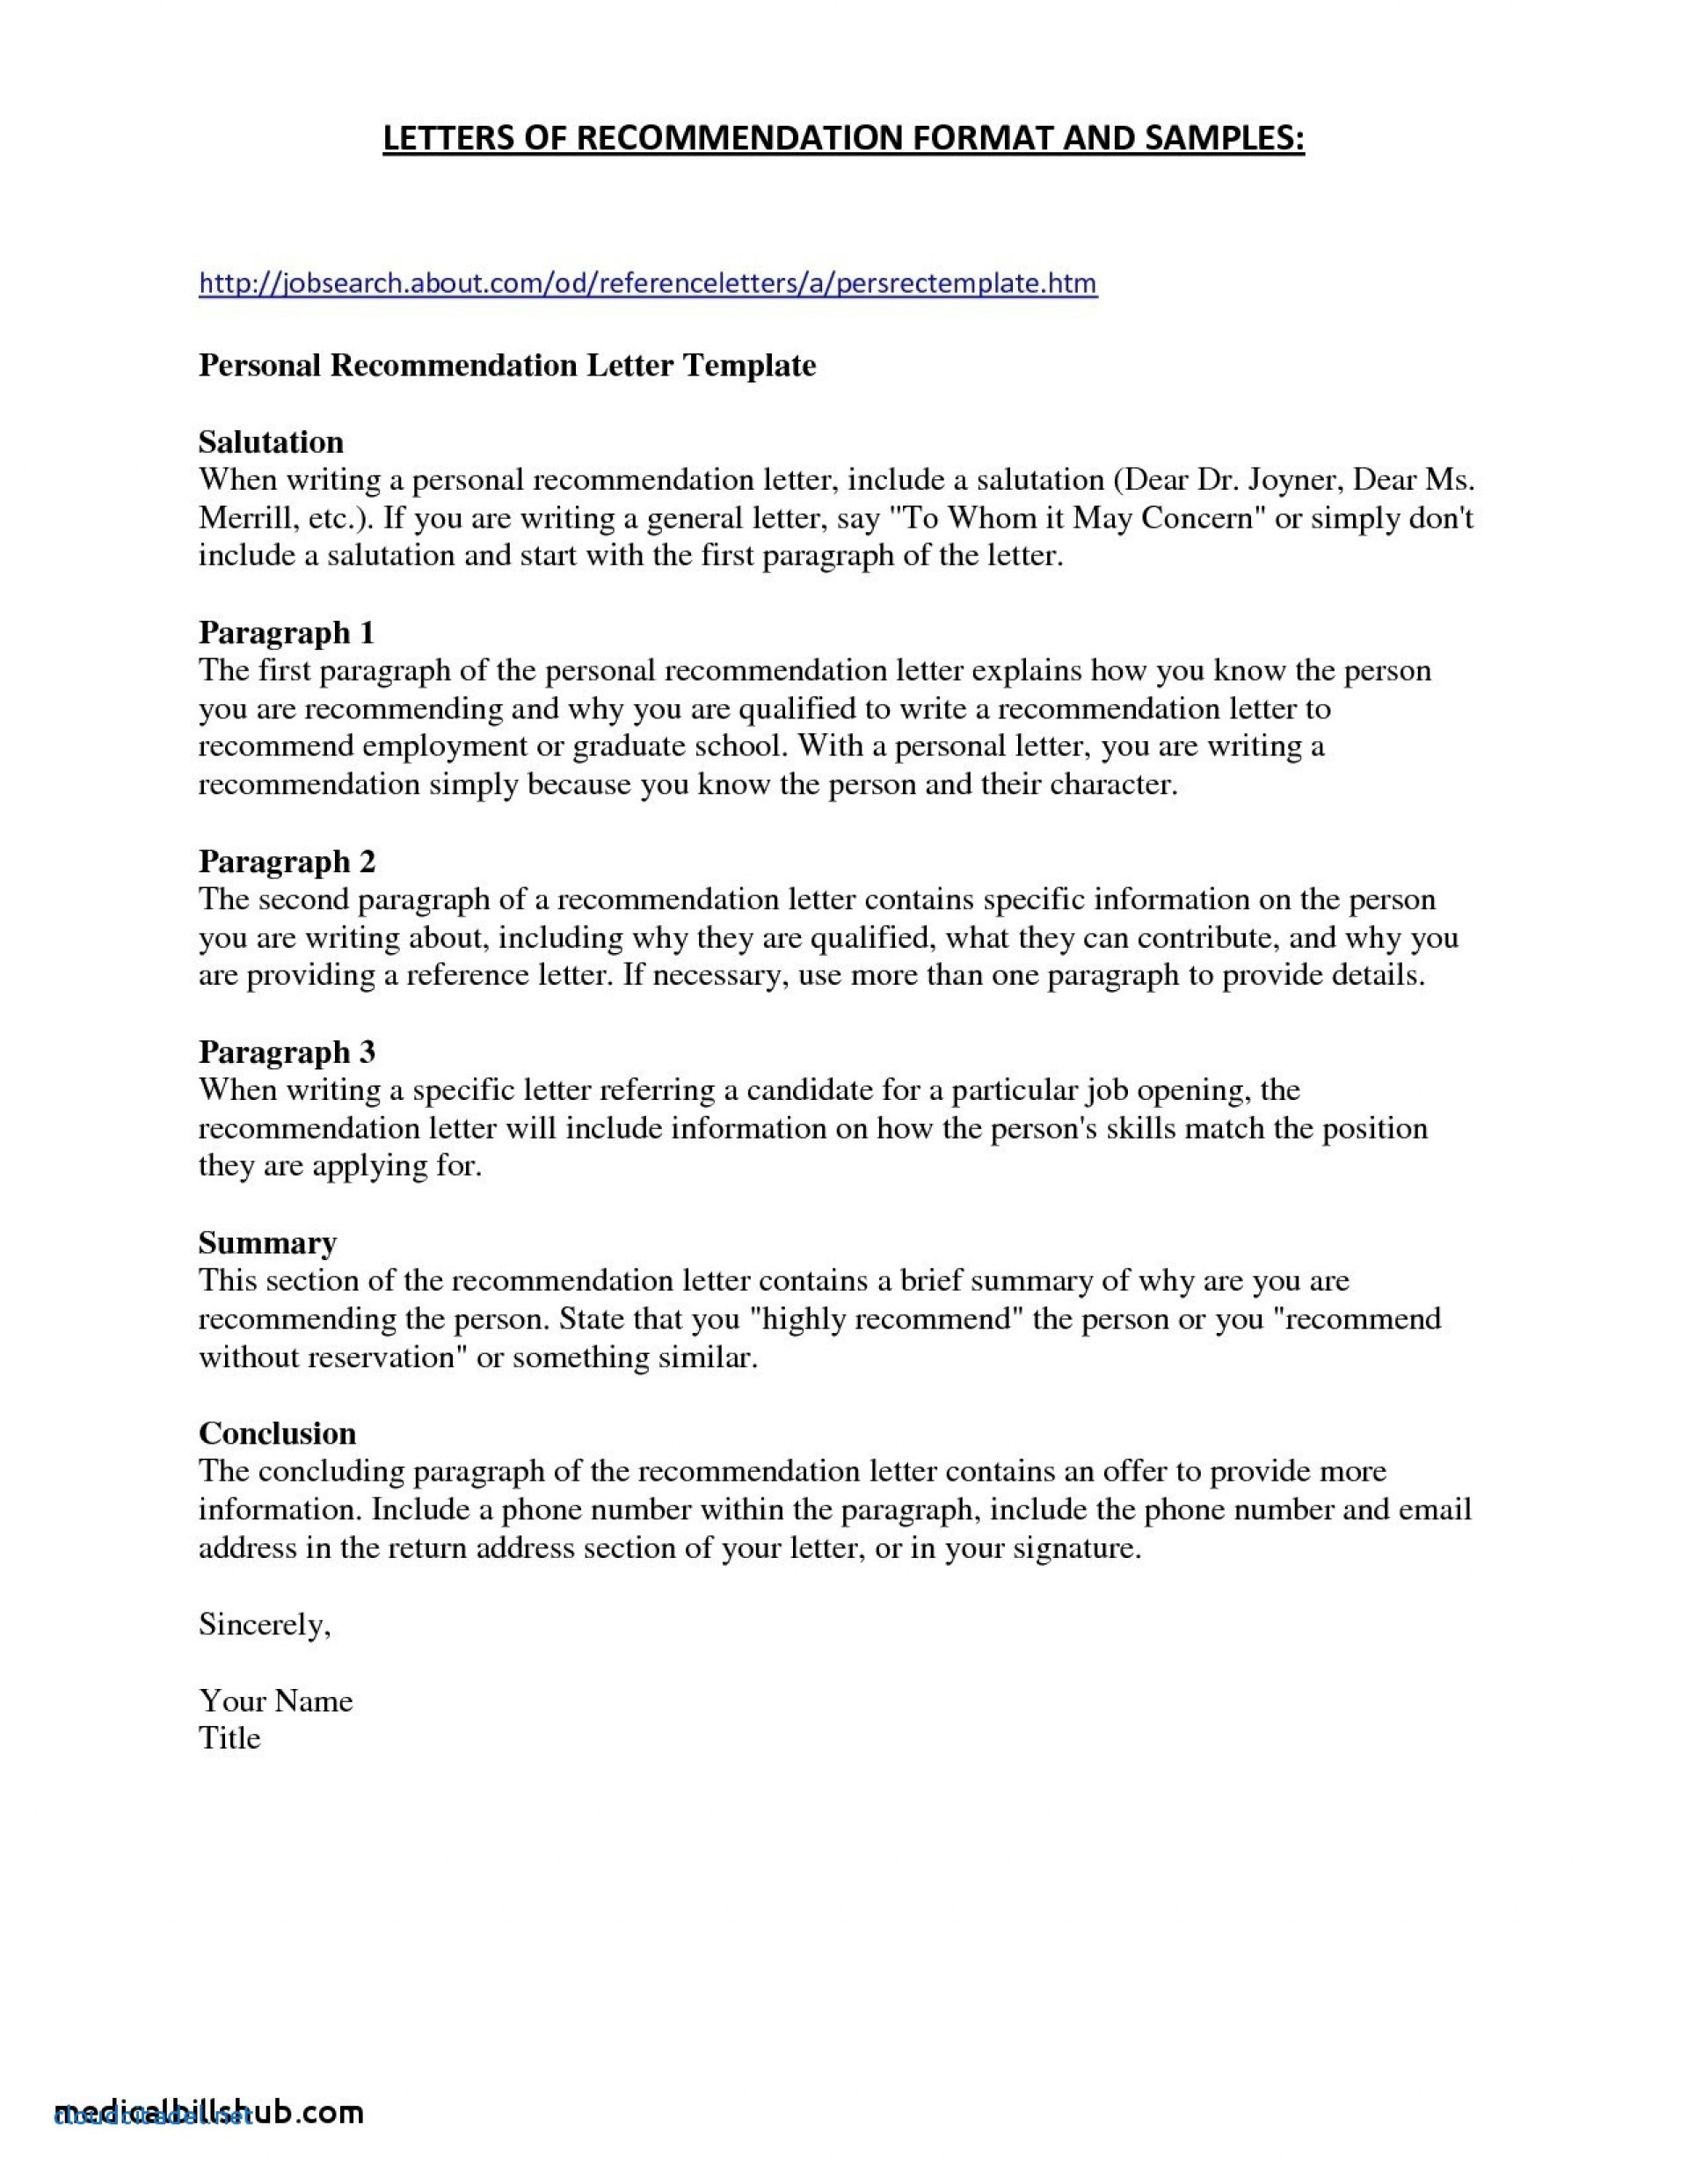 College Admission Recommendation Letter Template - Re Mendation Letter Sample for University Admission New Re